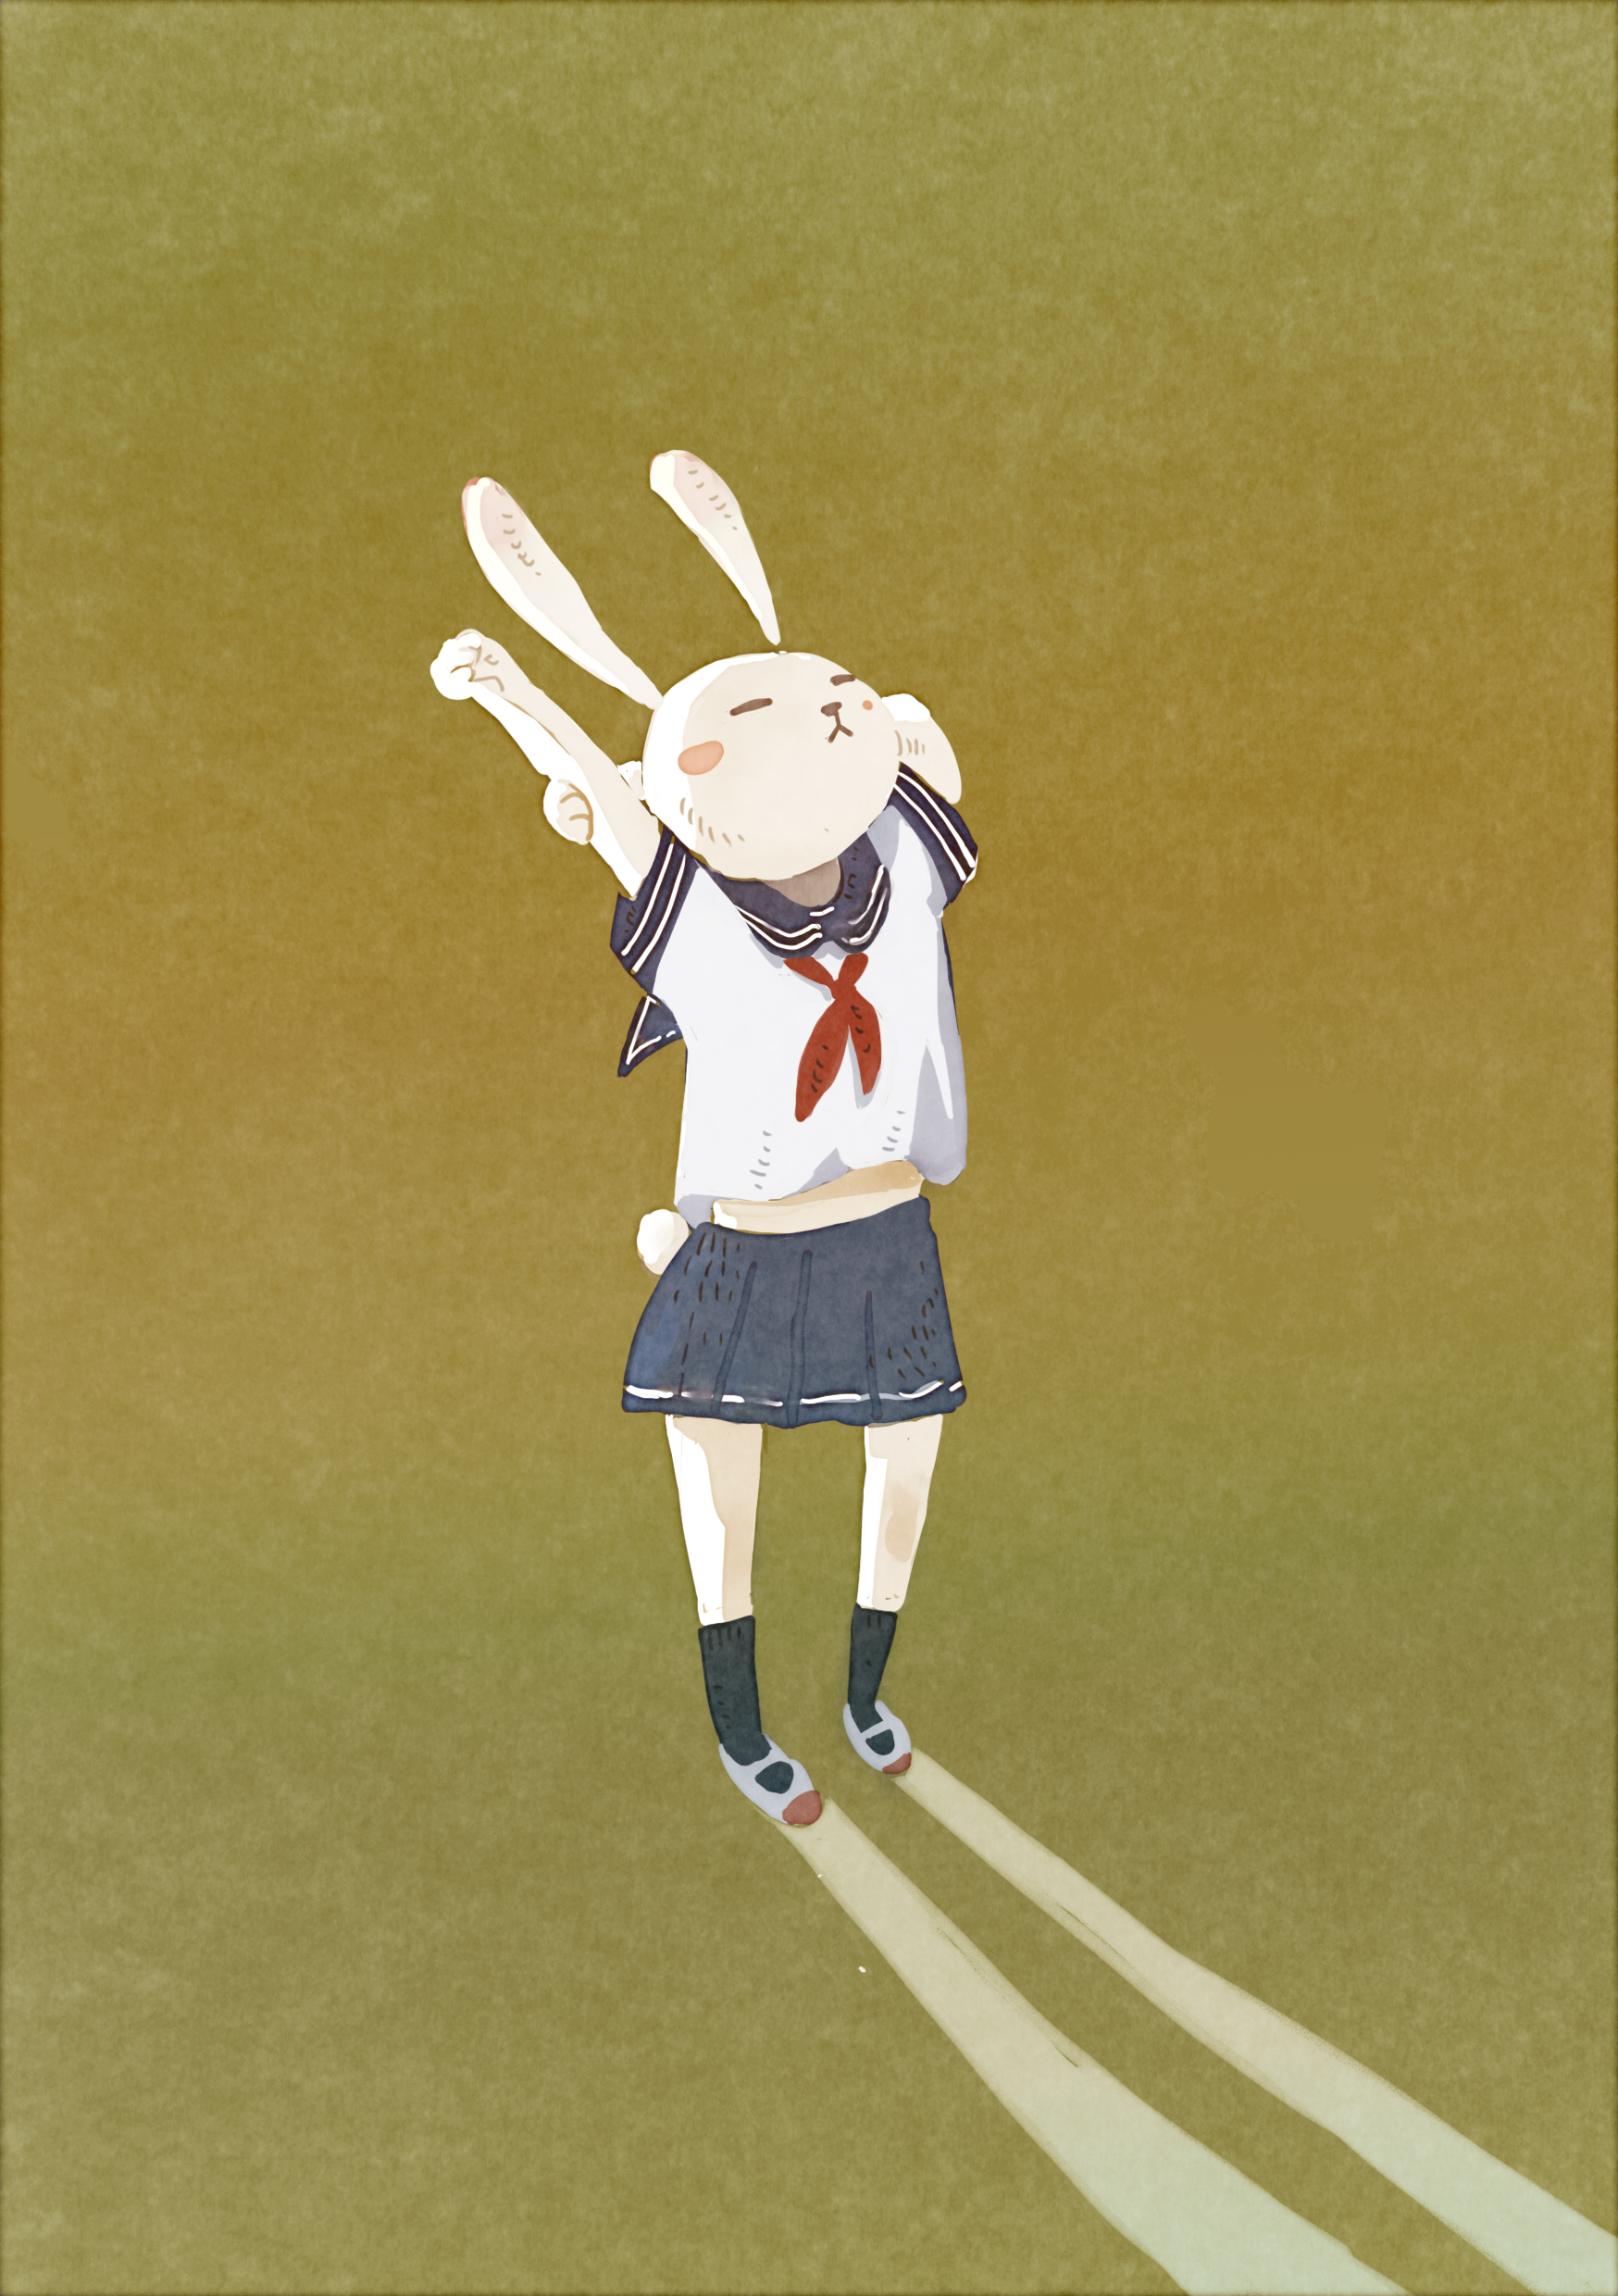 sailer-rabbit.jpg